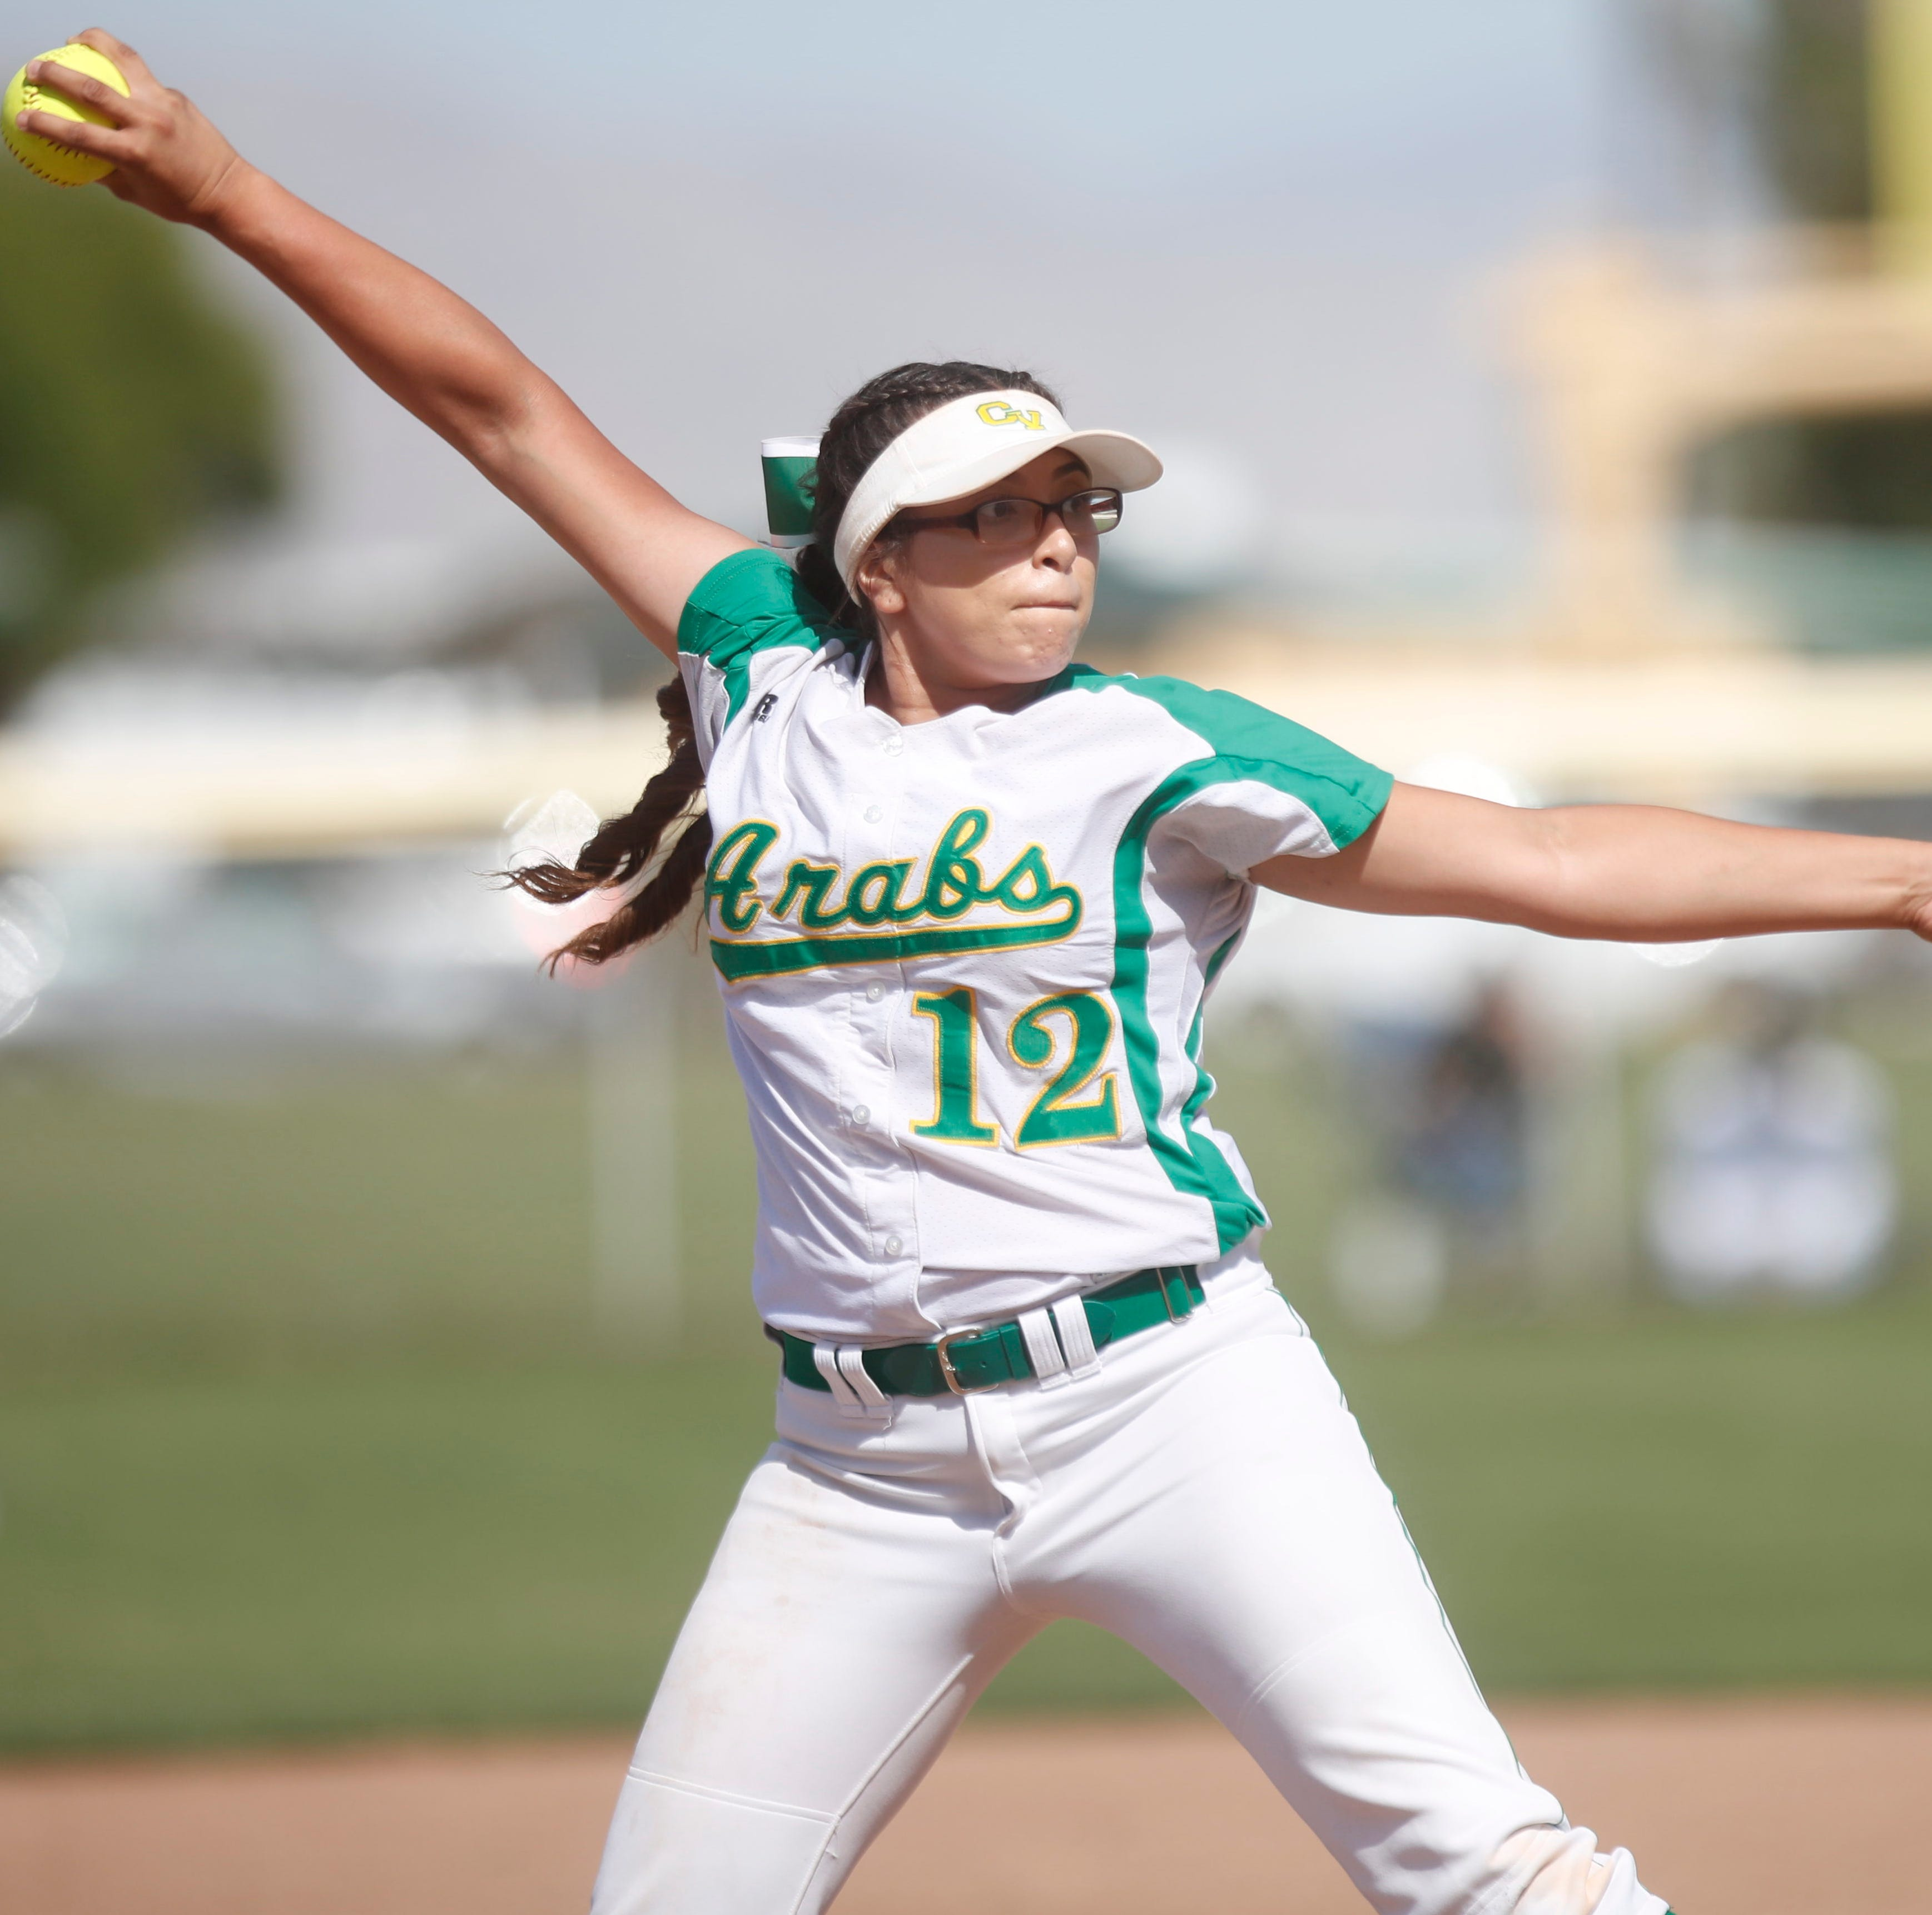 Arabs roll to third dominant CIF softball playoff victory. How are they doing it?